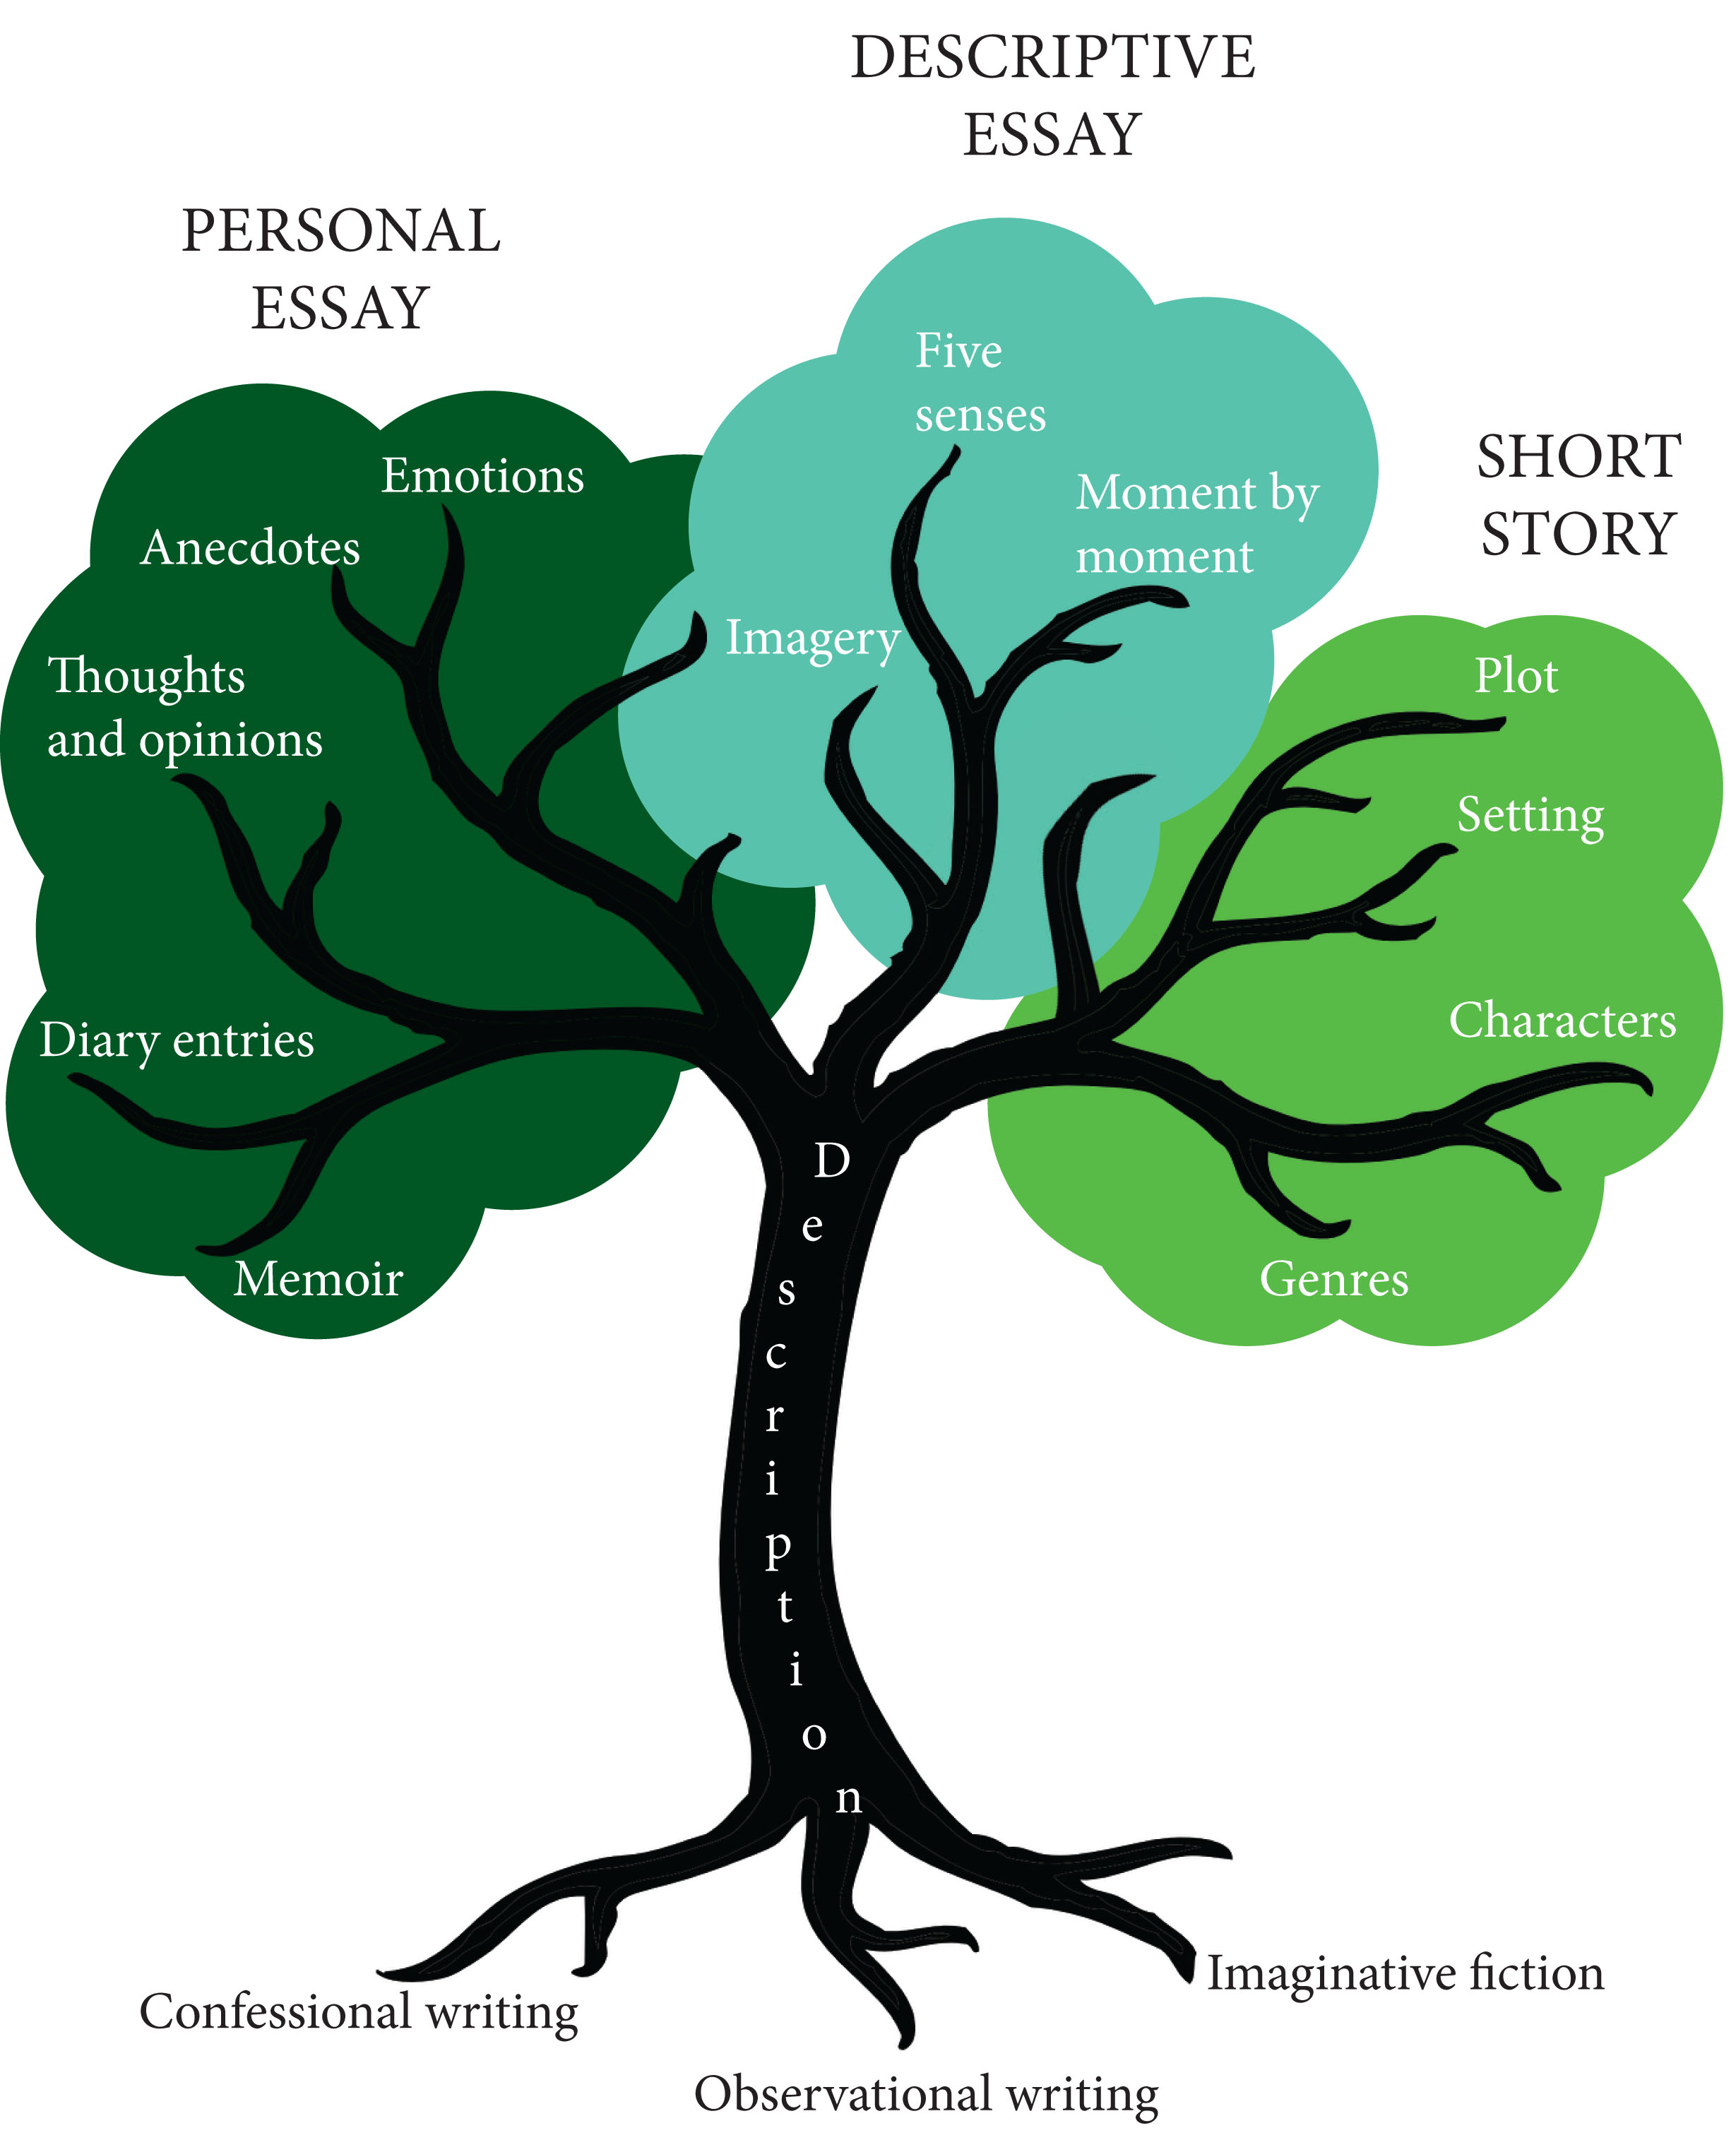 types of descriptive essay leavingcertenglish net tree diagram indd